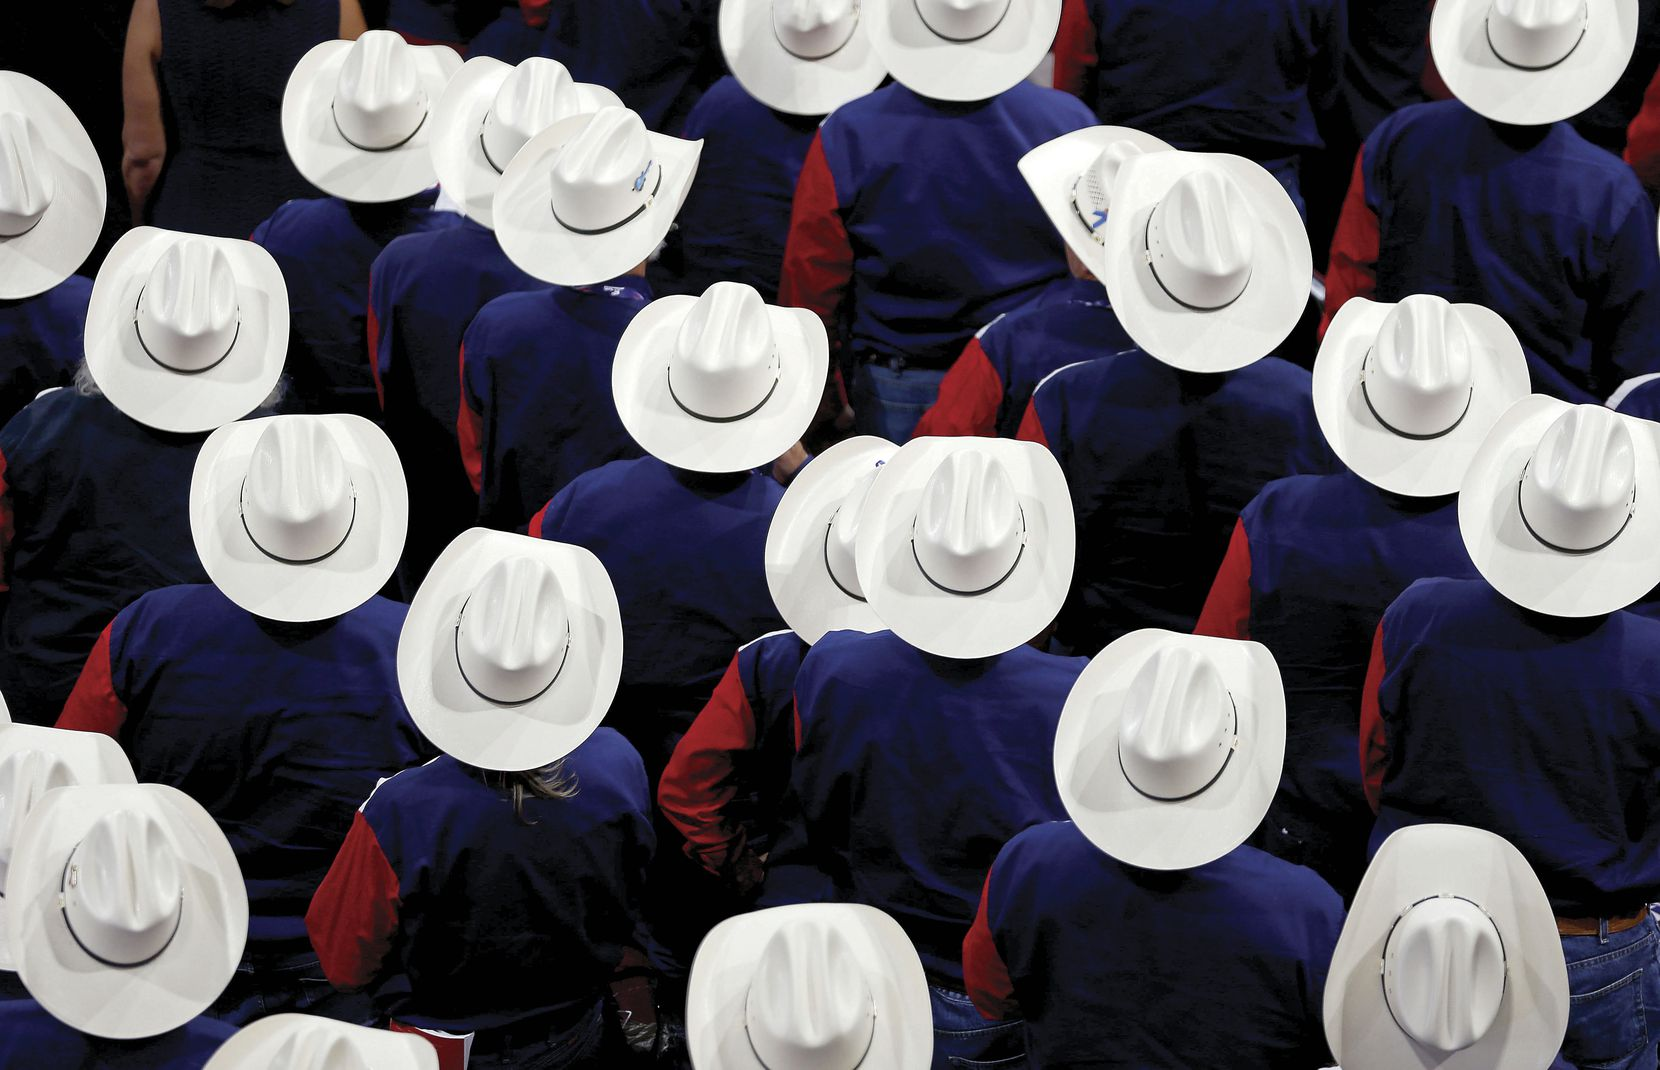 The Texas delegation was hard to miss during the convention's opening day on July 18 at Quicken Loans Arena.